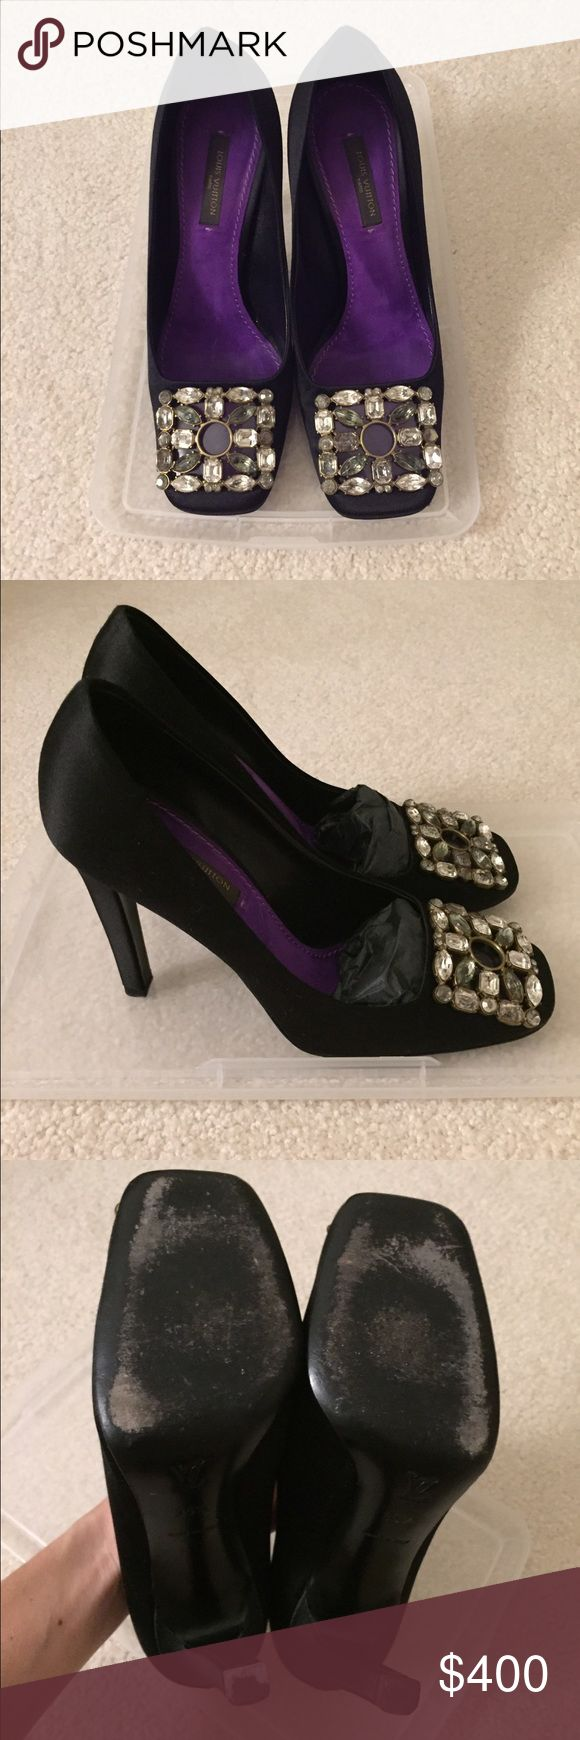 Louis Vuitton Crystal Pumps 100% Authentic Louis Vuitton Pumps. Black silk satin with eggplant colored lining adorned with gorgeous crystals. Clear peep toe in front. Extra heel tips included. Worn a few times, excellent condition. Size 35.5. No trades. No box, as is. Louis Vuitton Shoes Heels